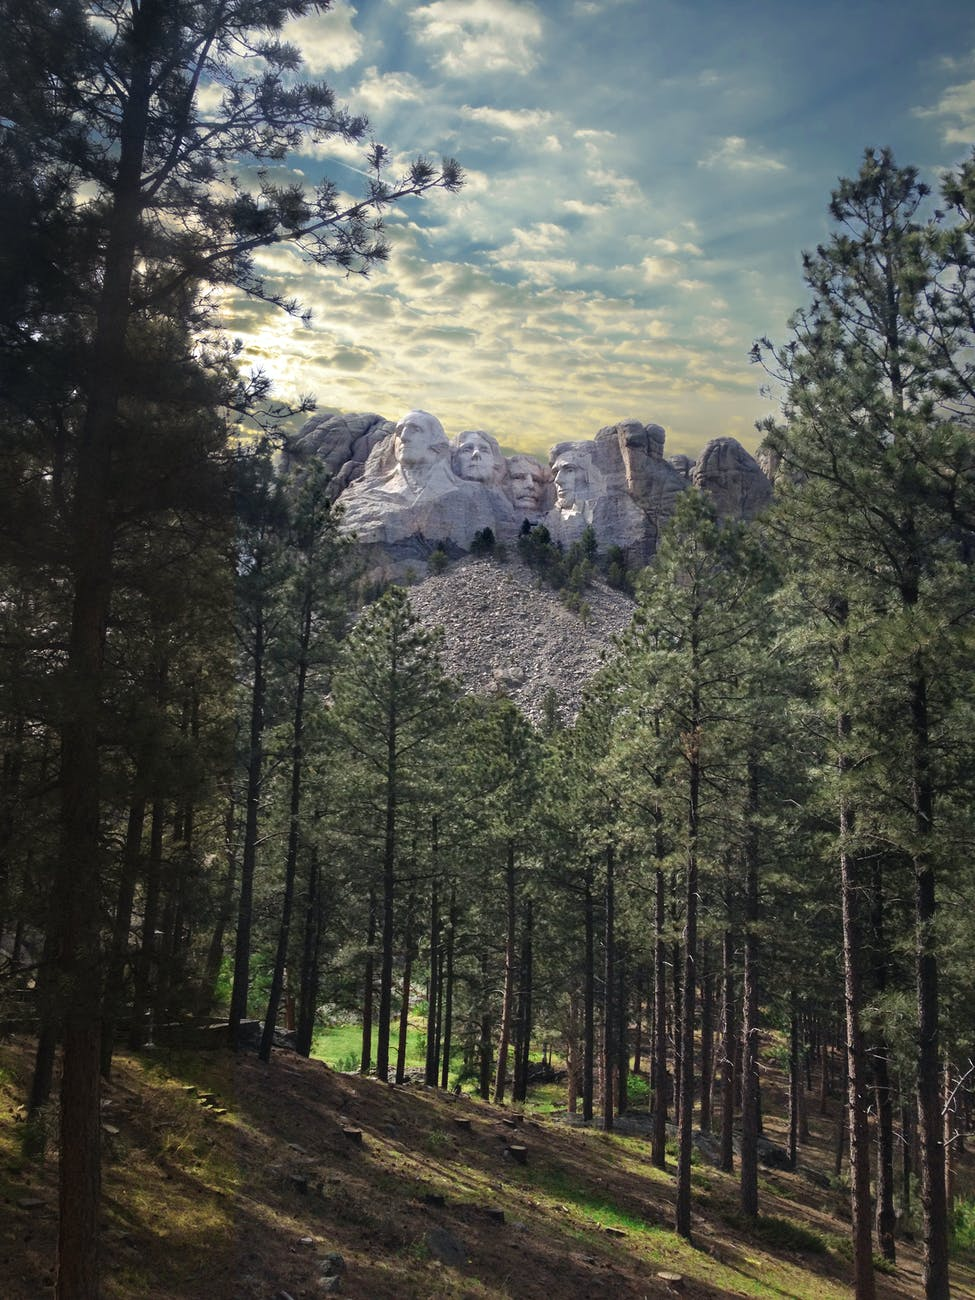 mount rushmore with statues of usa presidents in national park